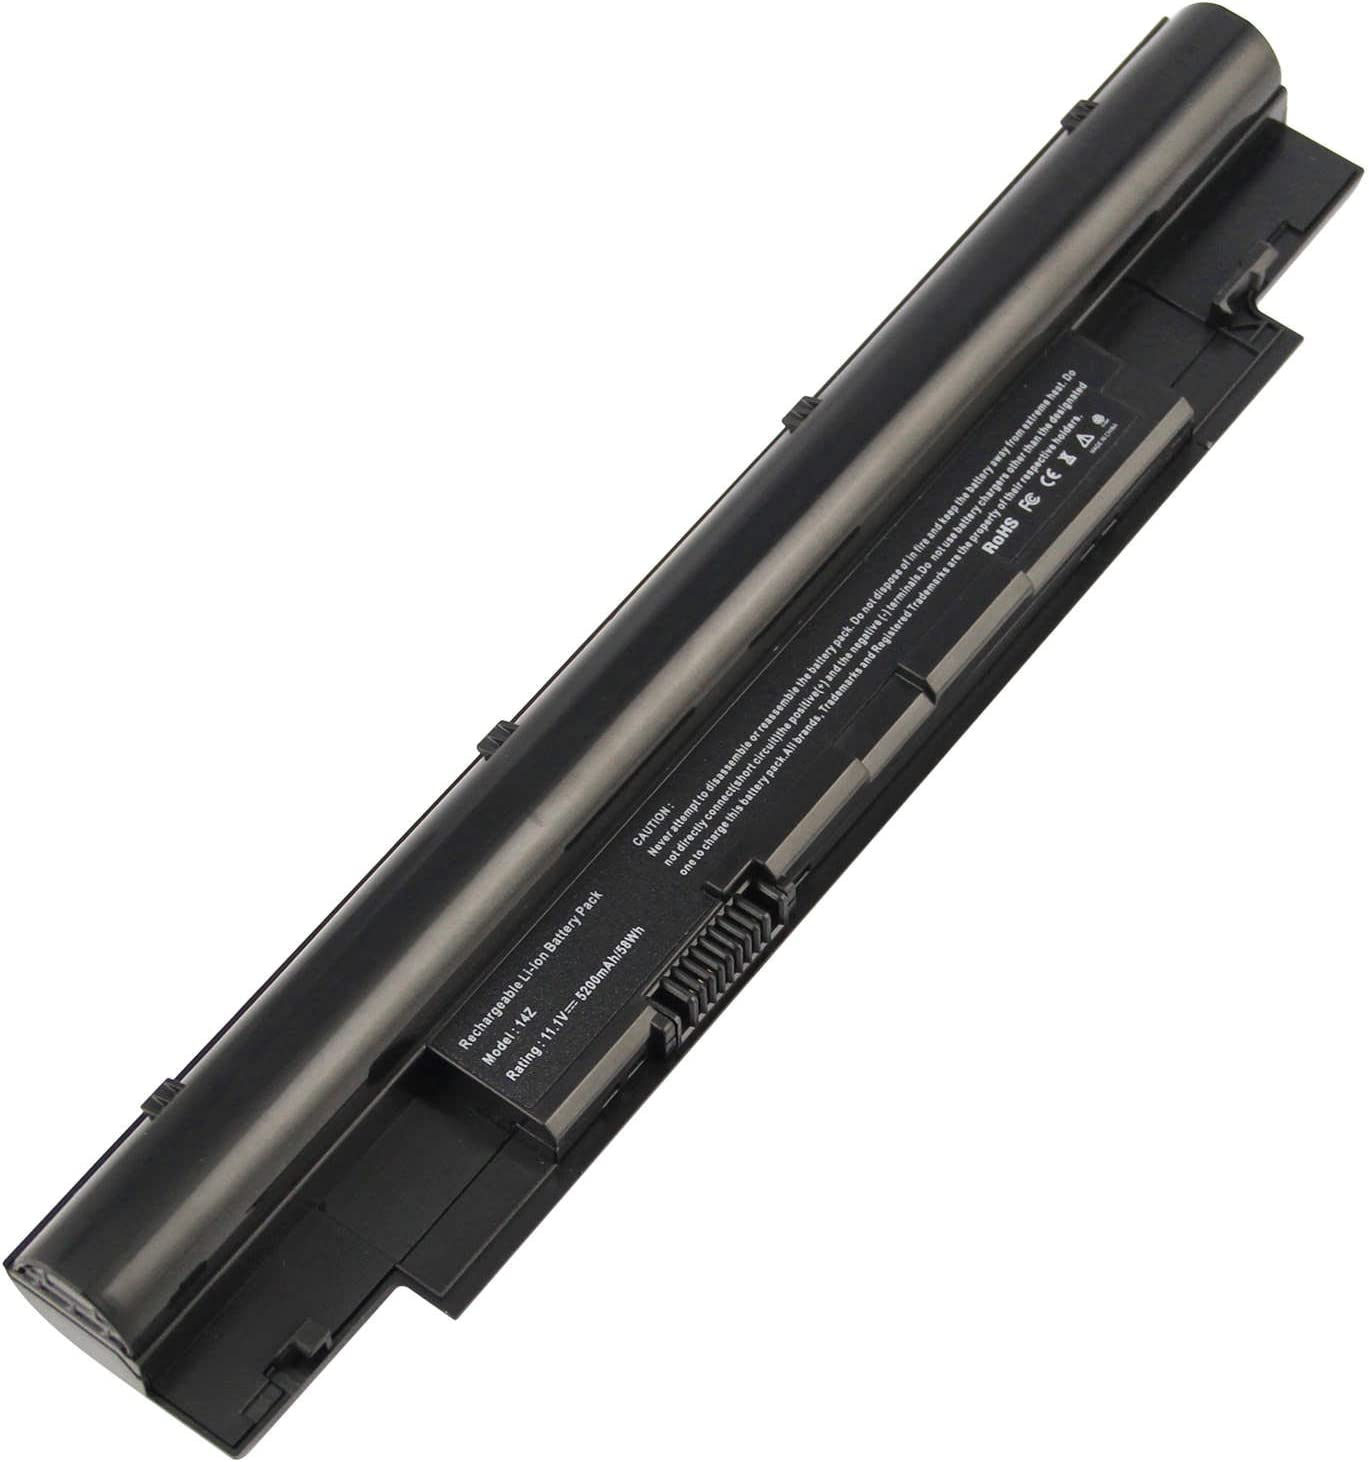 ARyee N311z Battery Compatible with Dell Inspiron 13Z N311z 14Z N411z Vostro V131 V131D V131R Latitude 3330 Series(5200mAh 11.1V)